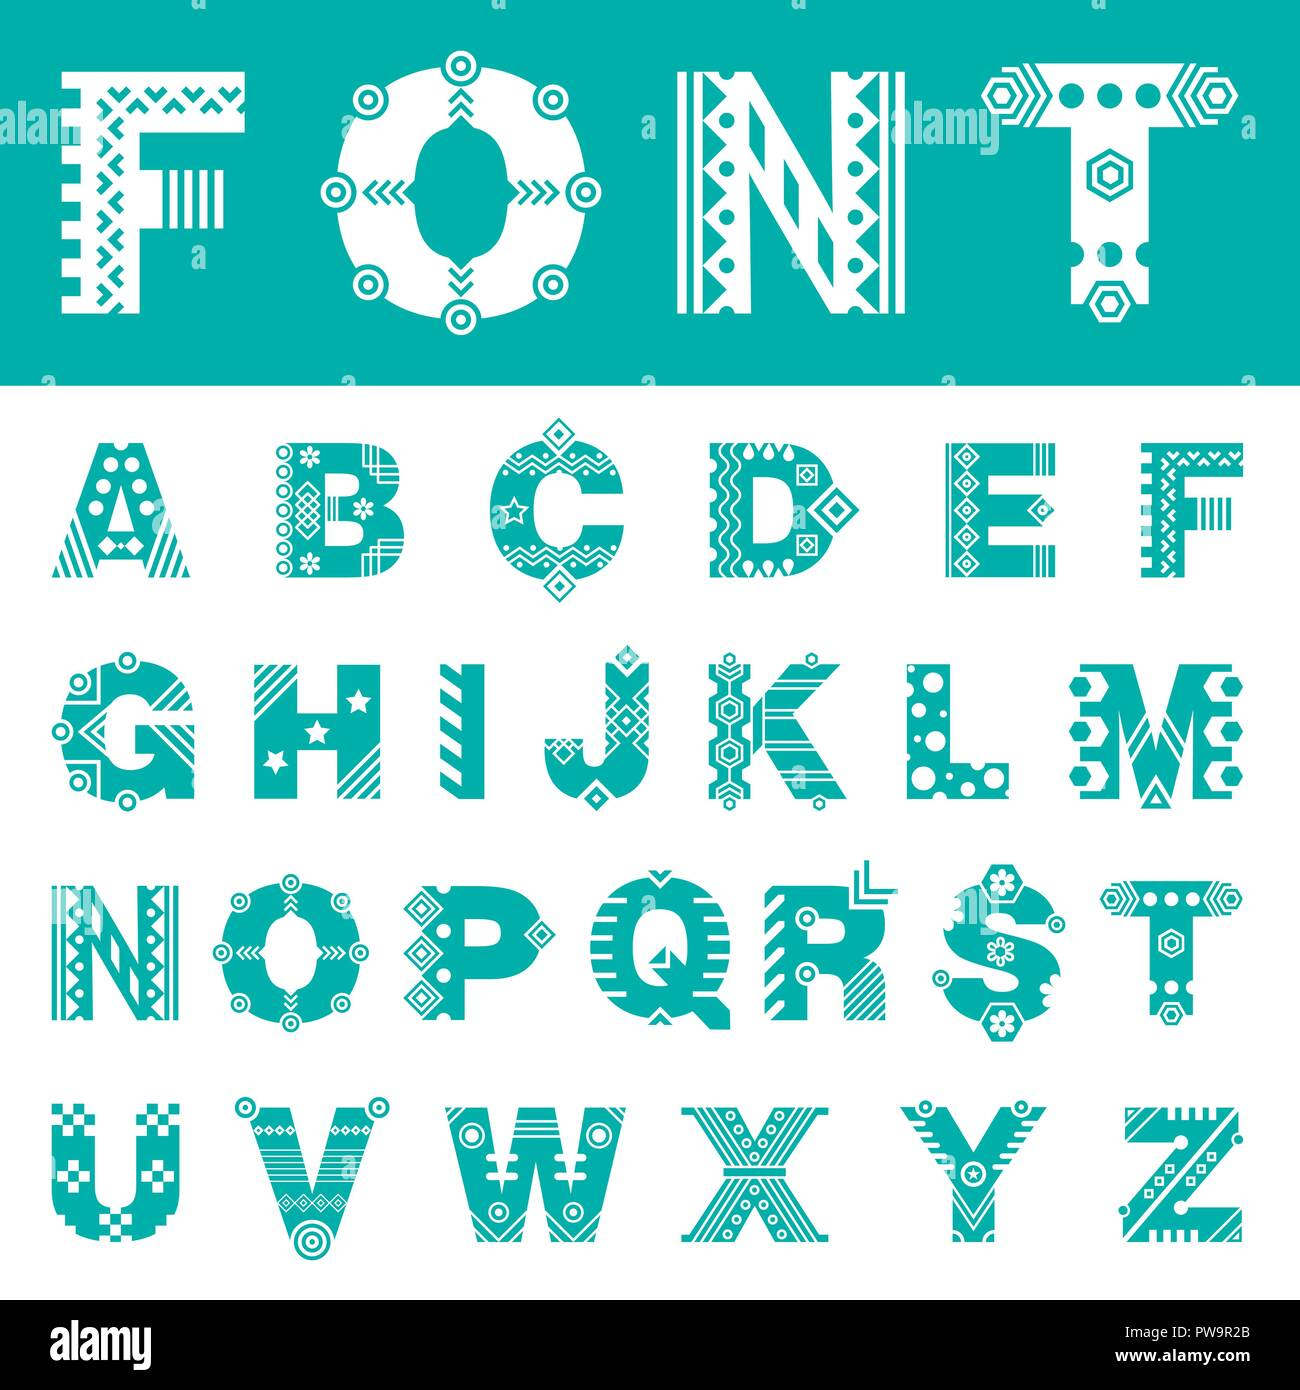 Font with ornament. Typeface of latin letters - Stock Image